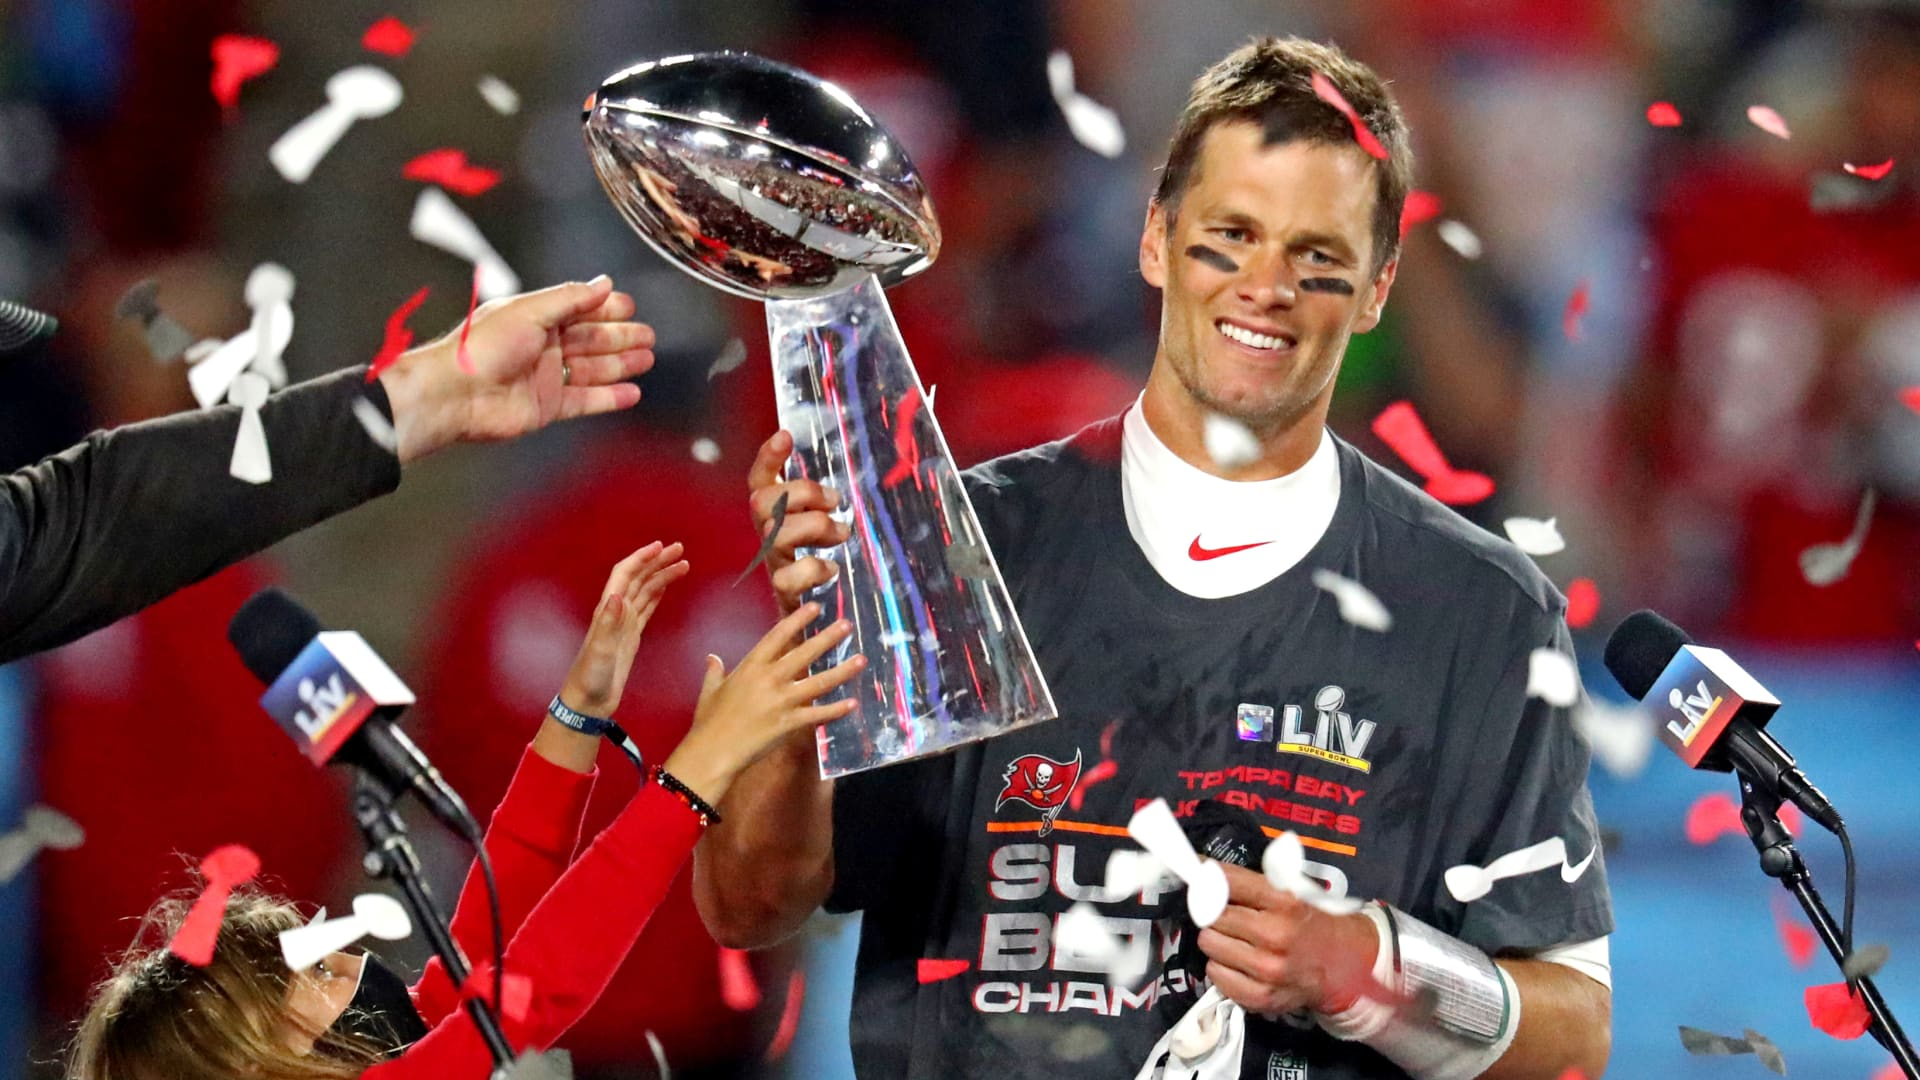 Tampa Bay Buccaneers quarterback Tom Brady (12) celebrates with the Vince Lombardi Trophy after beating the Kansas City Chiefs in Super Bowl LV at Raymond James Stadium.